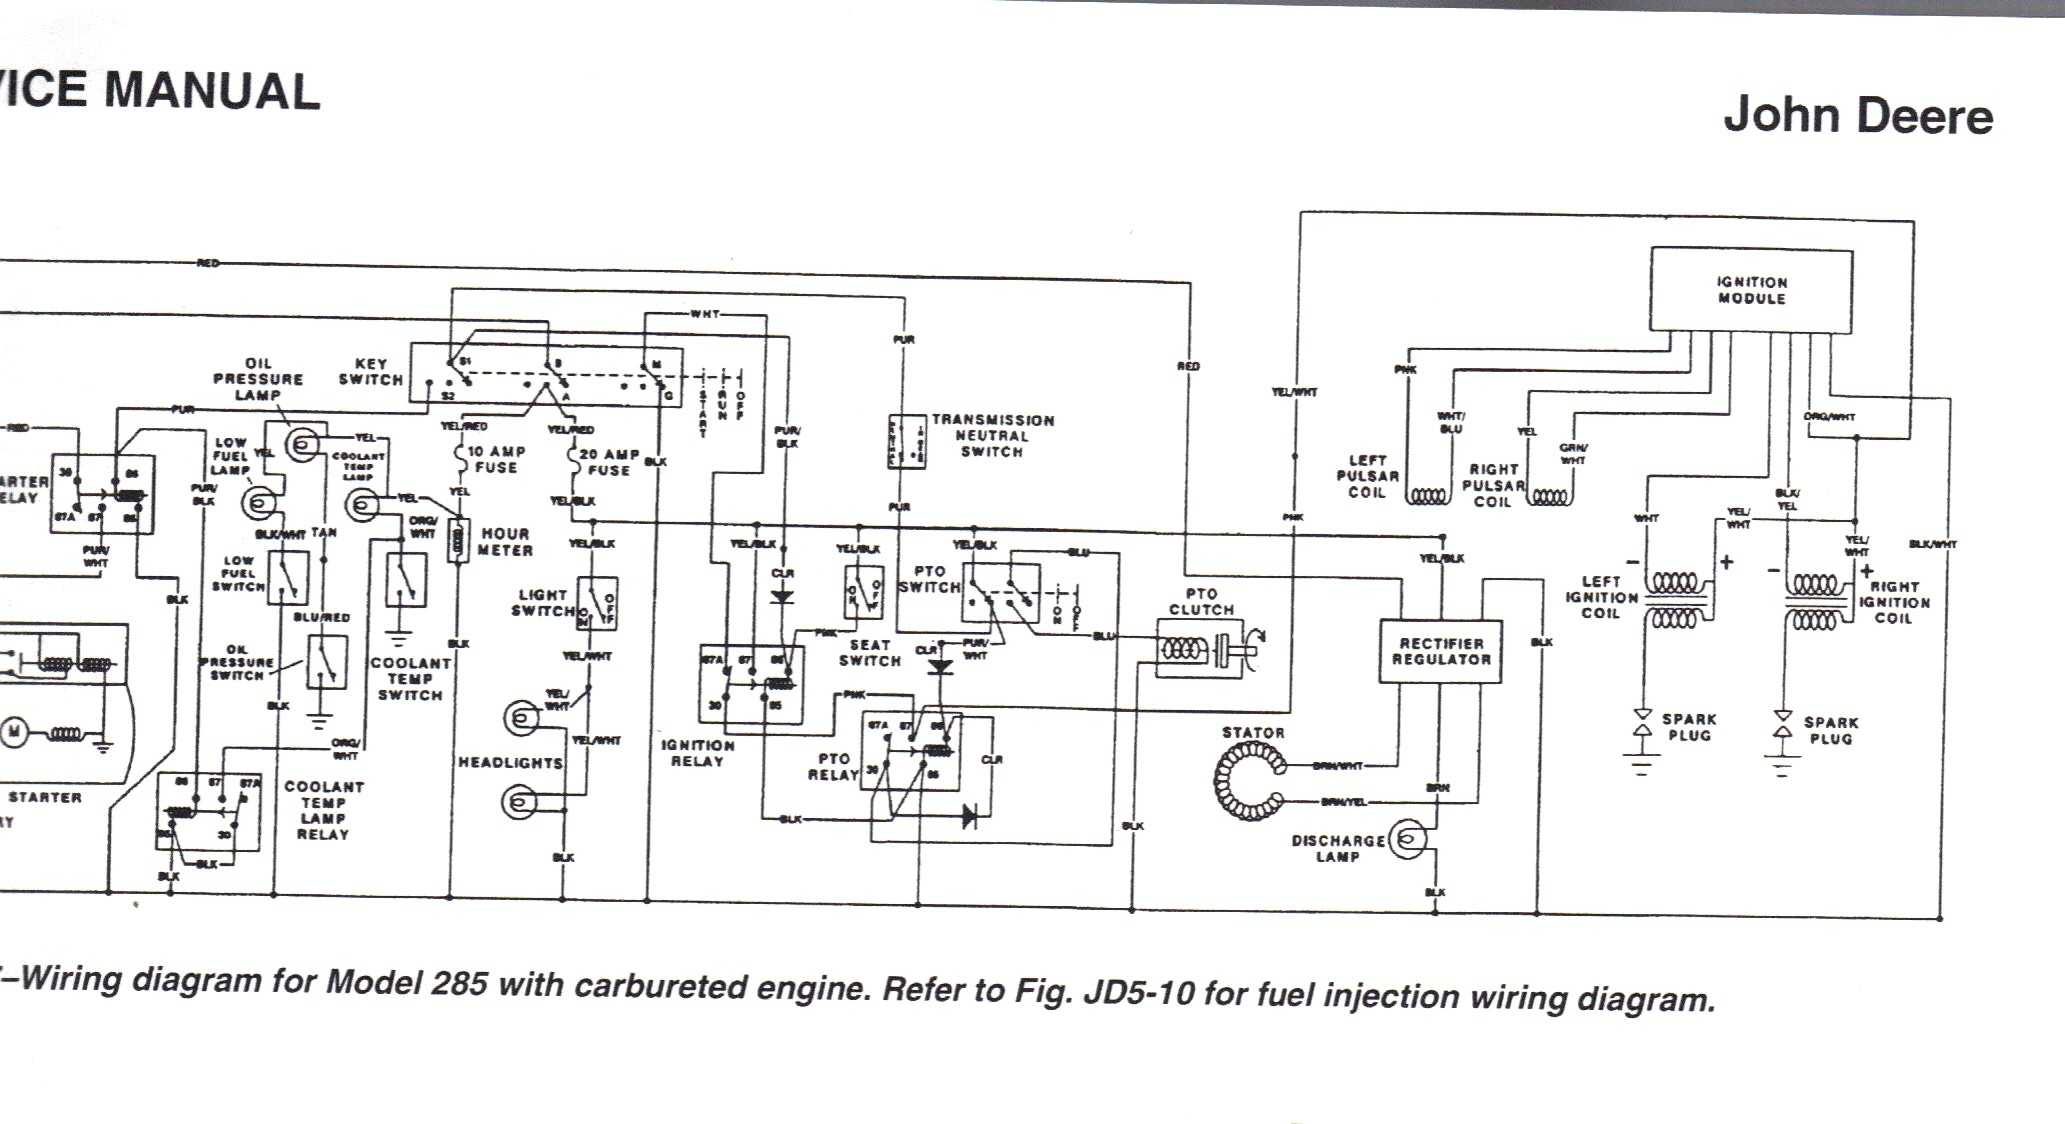 John Deere Model 1445 Wiring Diagram